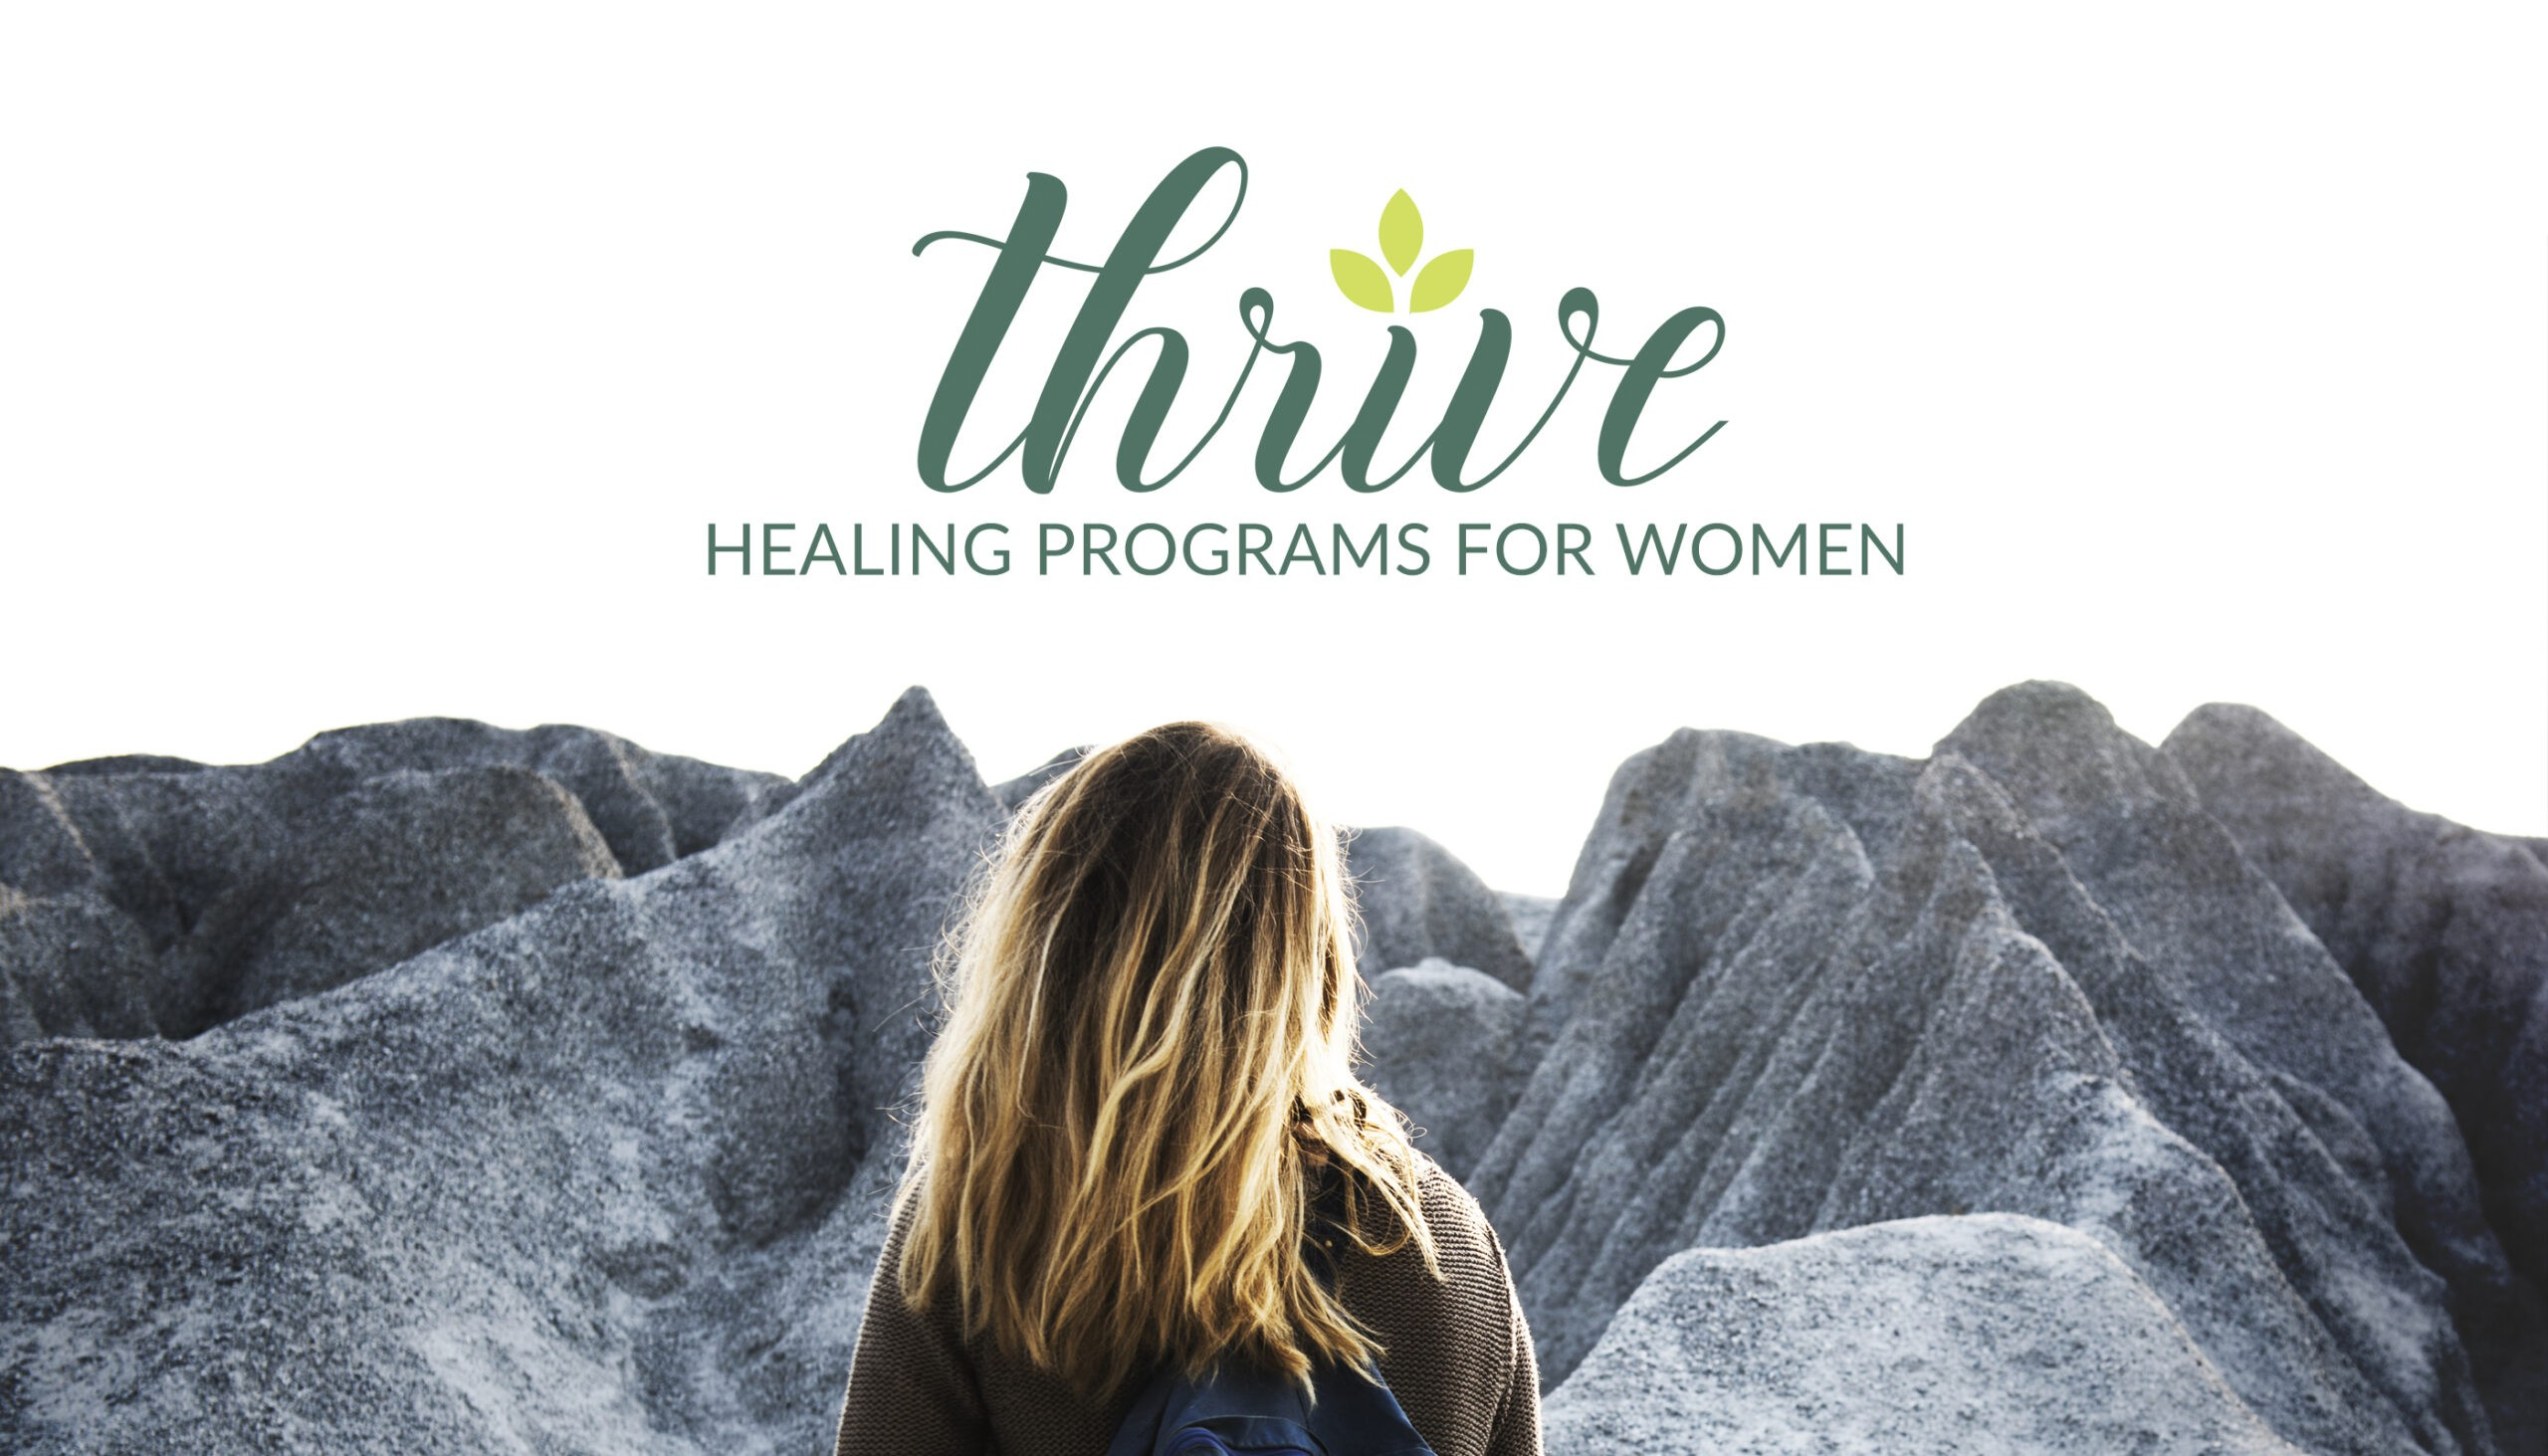 https://marriagerecoverycenter.com/wp-content/uploads/2020/10/Thrive-side-bar-graphic-NEW-general-header-scaled.jpg